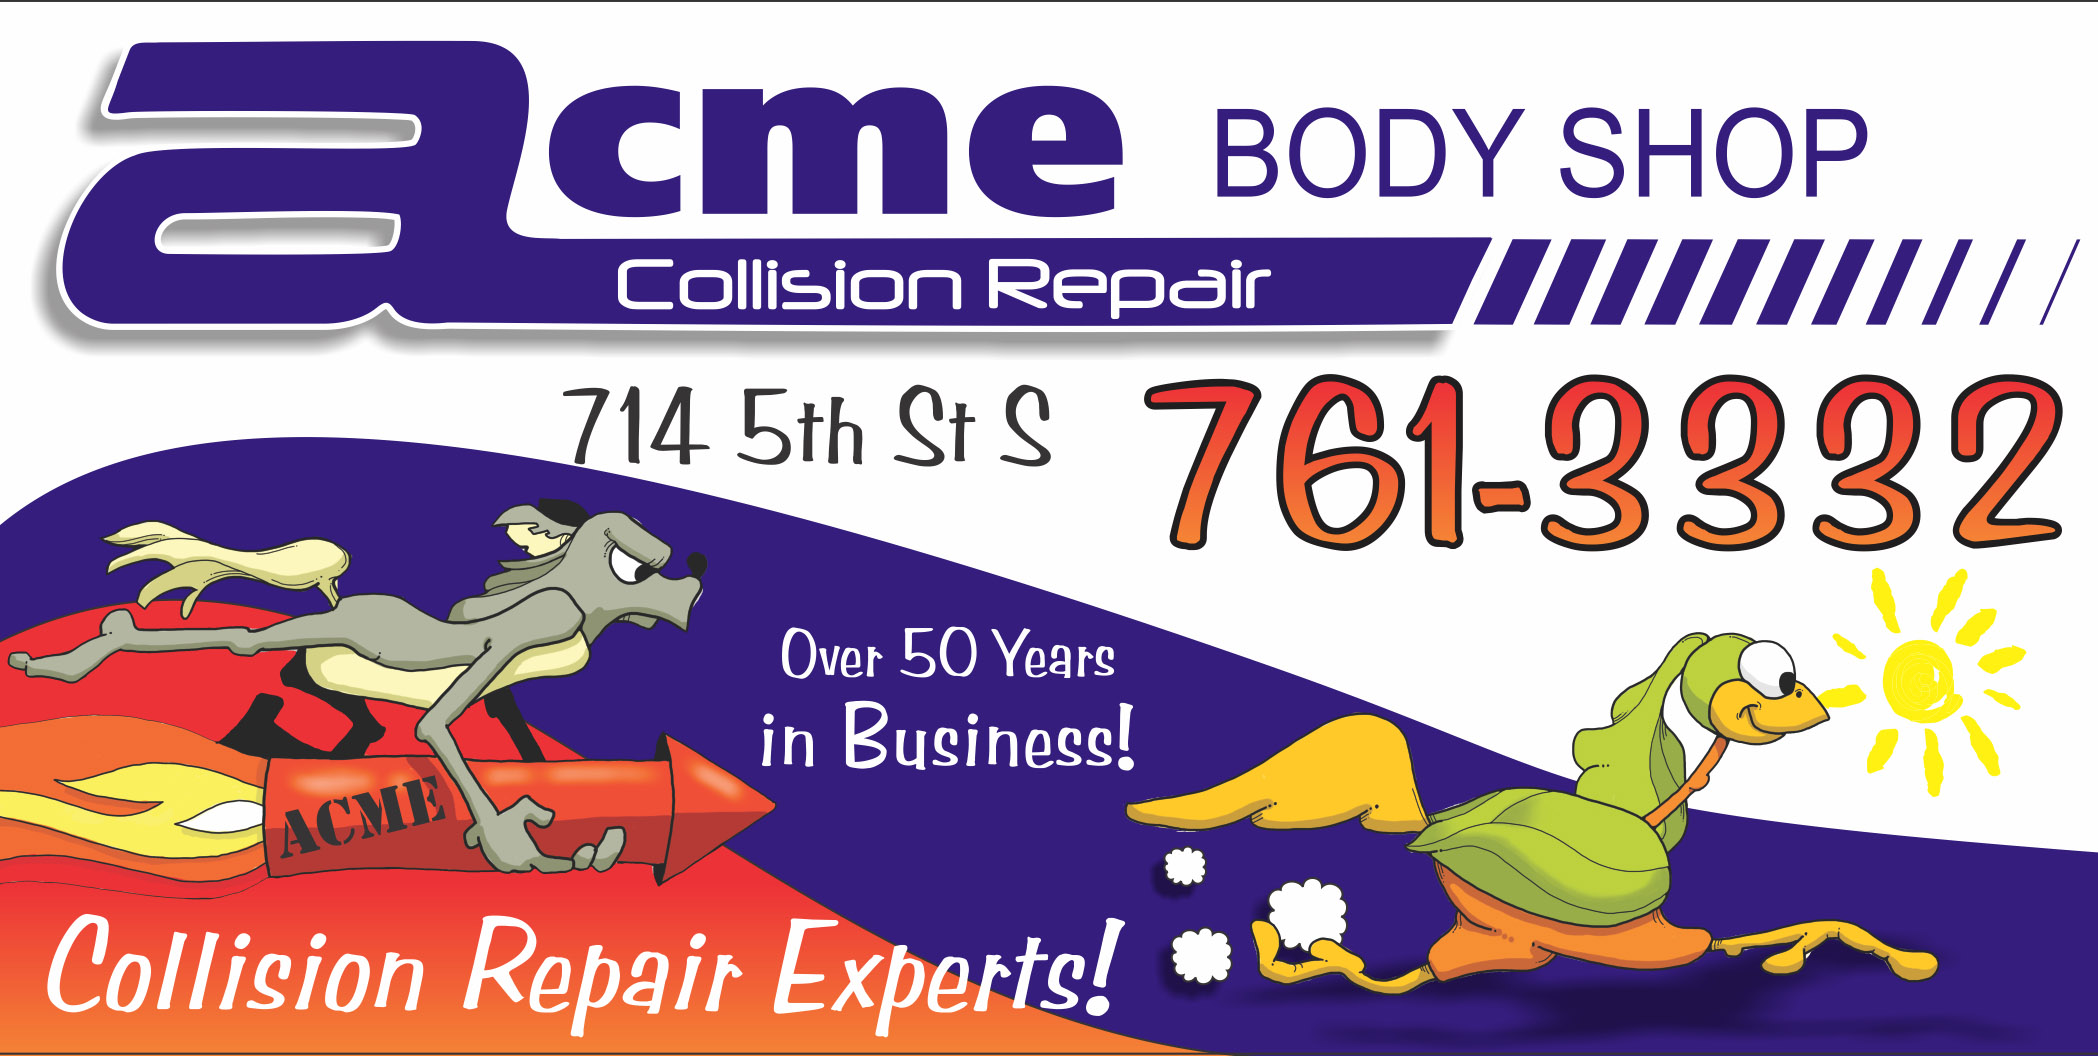 Acme Body Shop - The Best Body Shop in Great Falls, MT USA